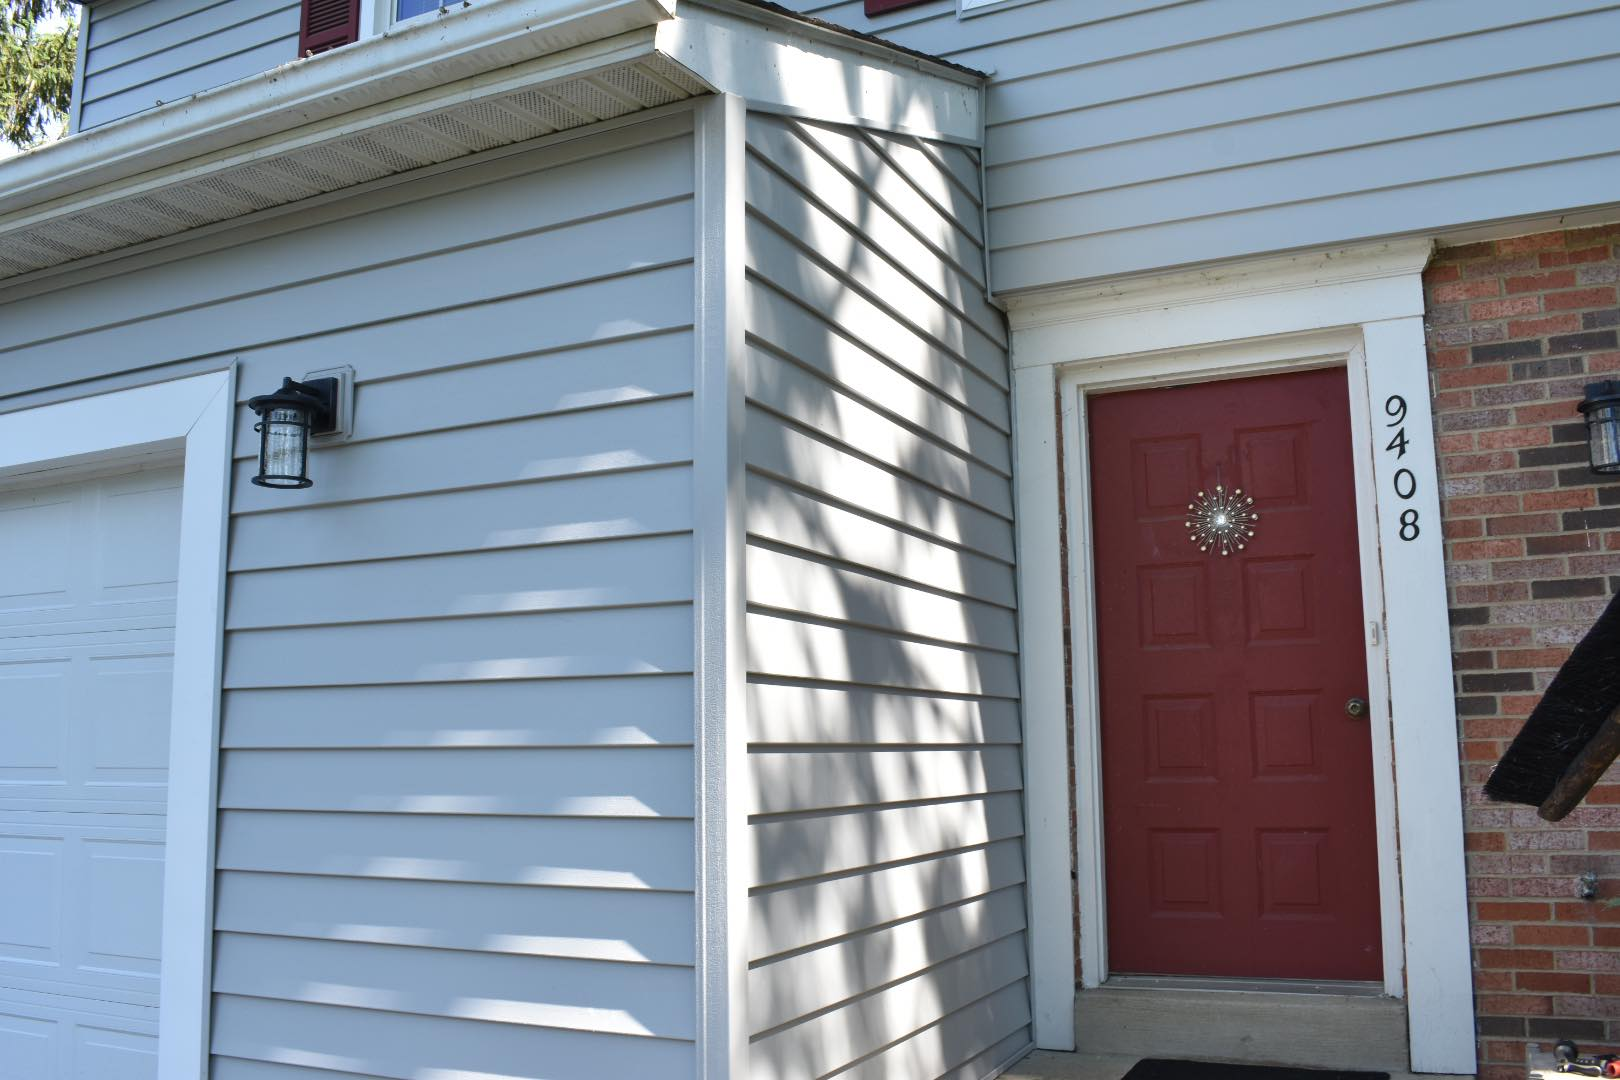 Vinyl siding is the optimal solution for homeowners looking to replace their old siding.